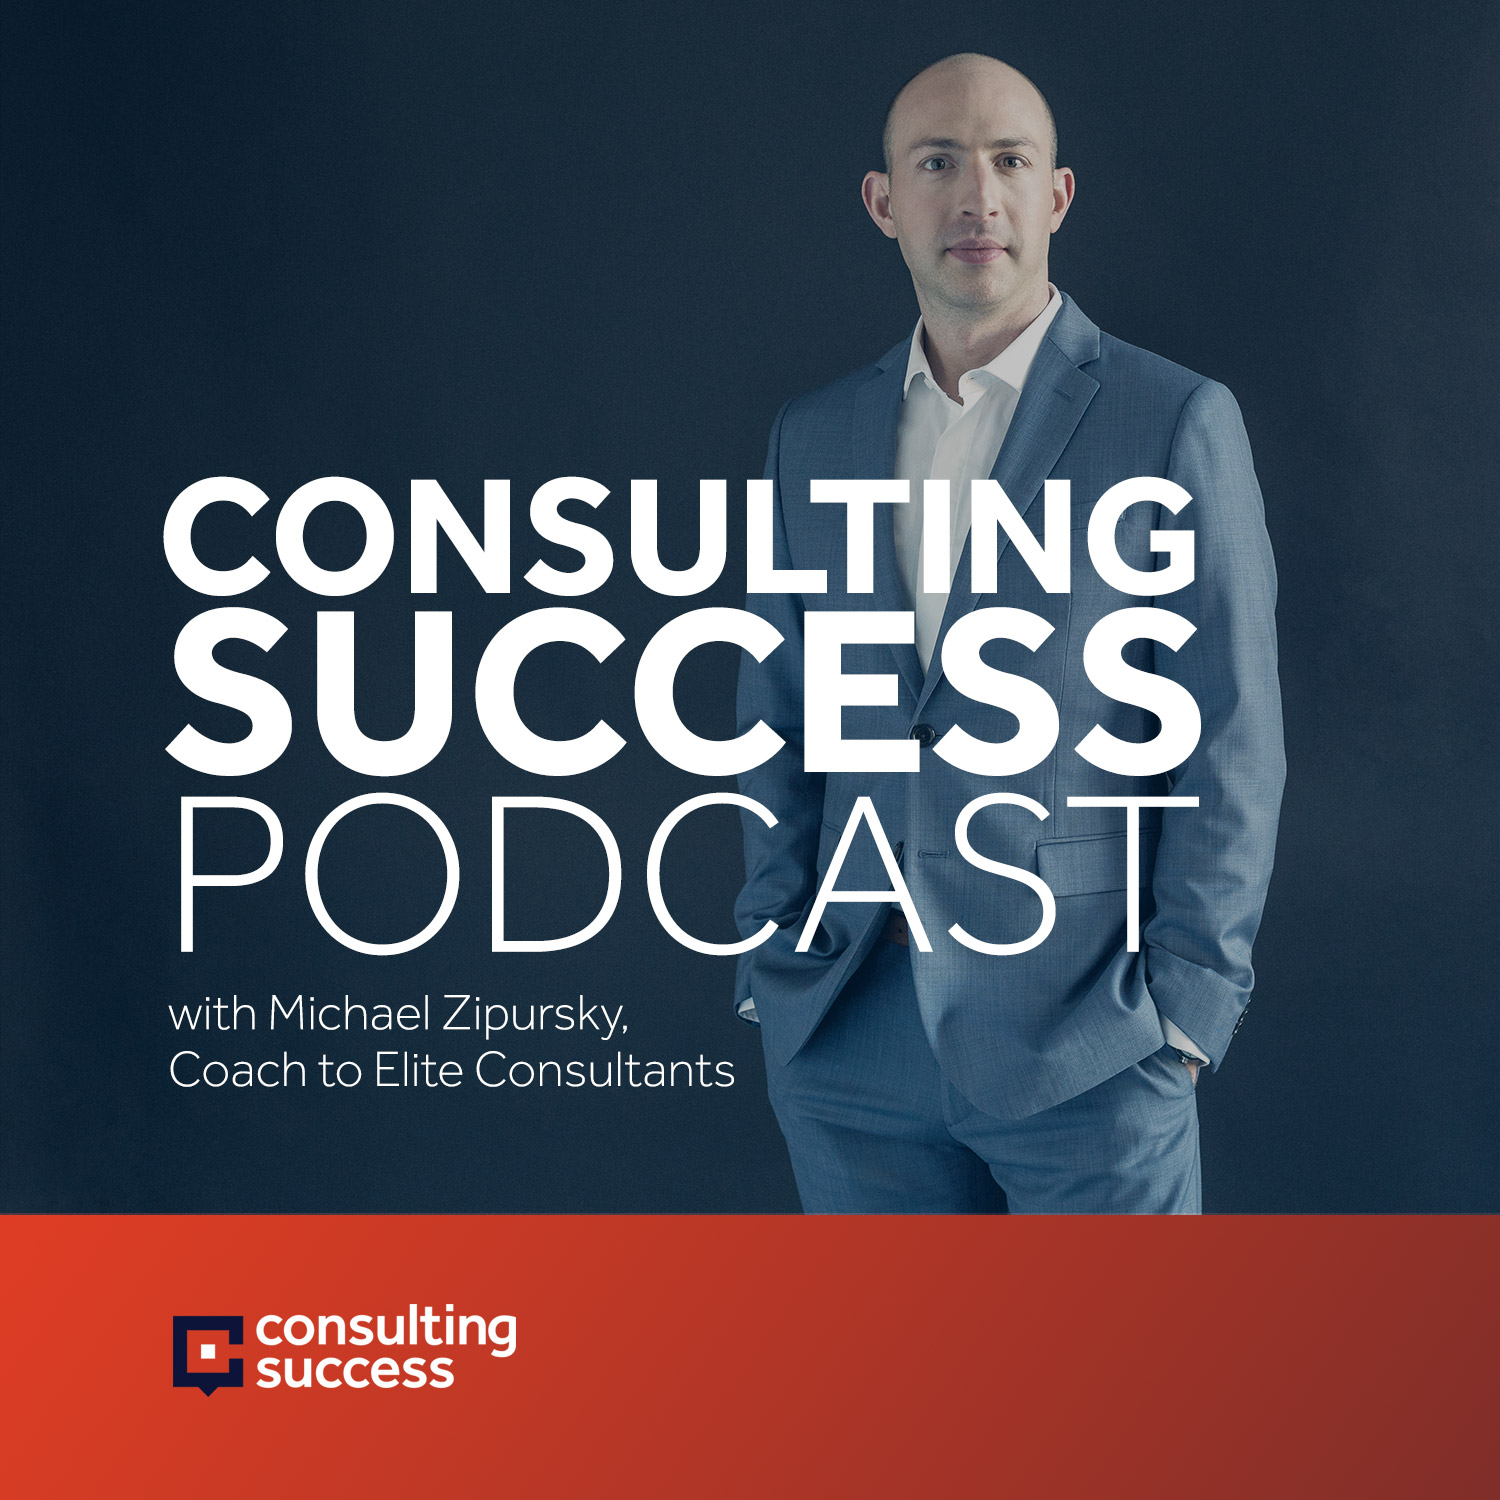 Mastering The Fundamentals Of Consulting Business Development With Jim Barnish Jr.: Podcast #143